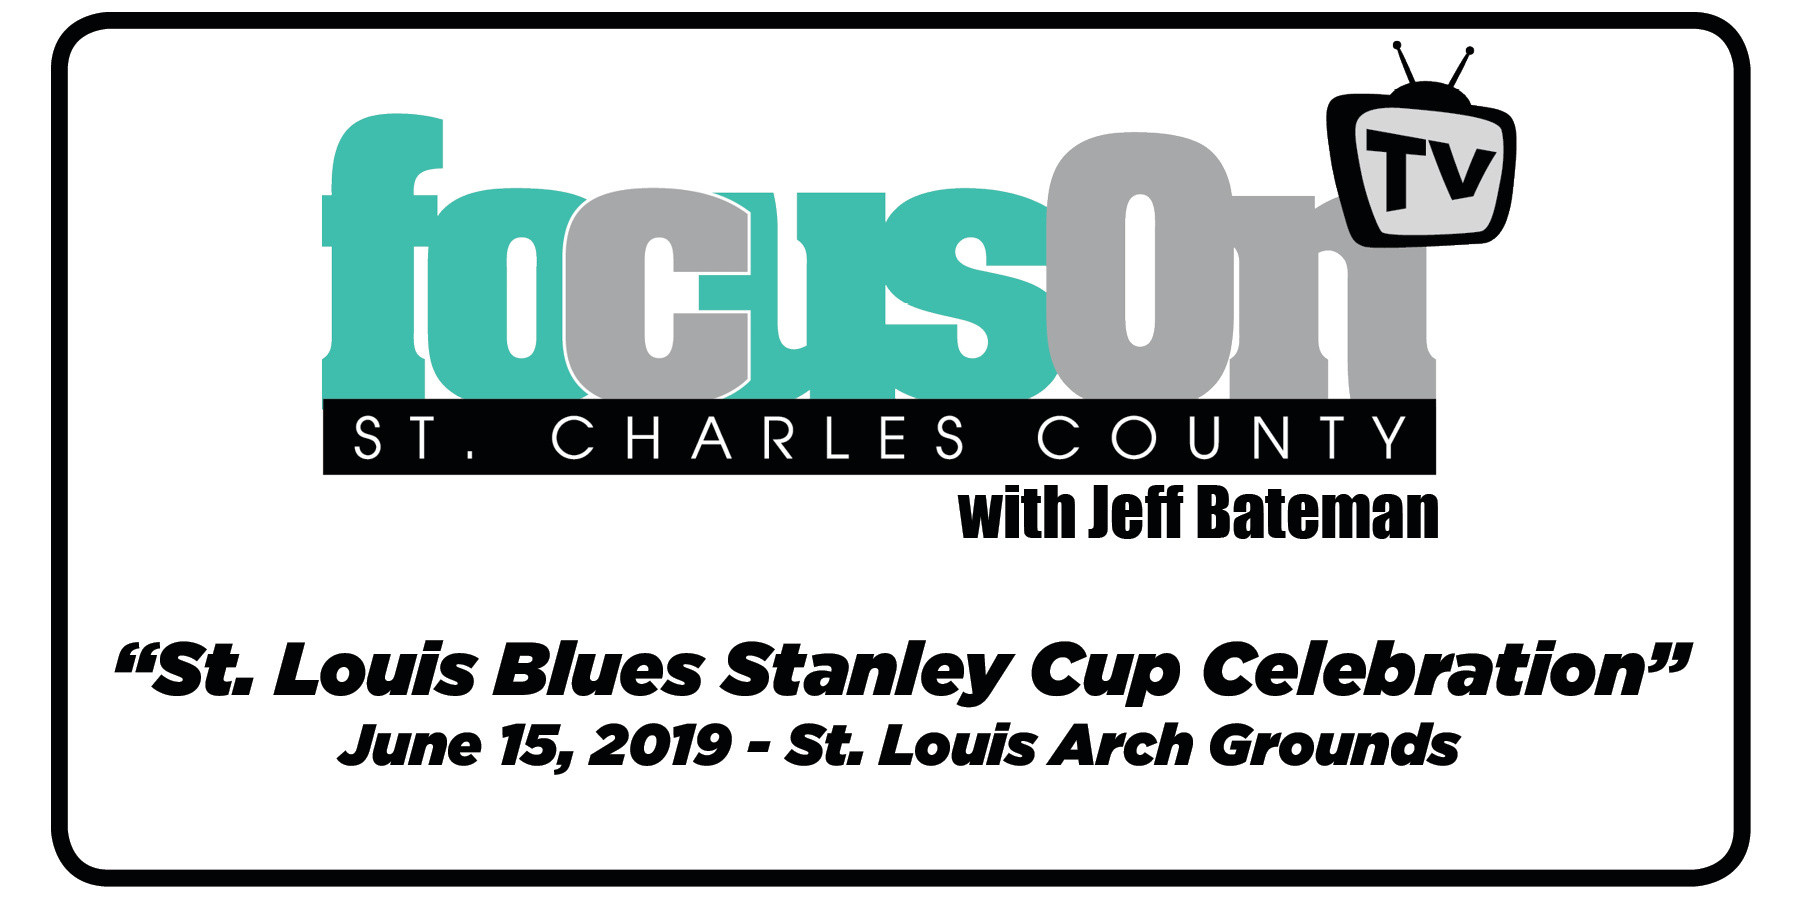 St. Louis Blues Stanley Cup Celebration